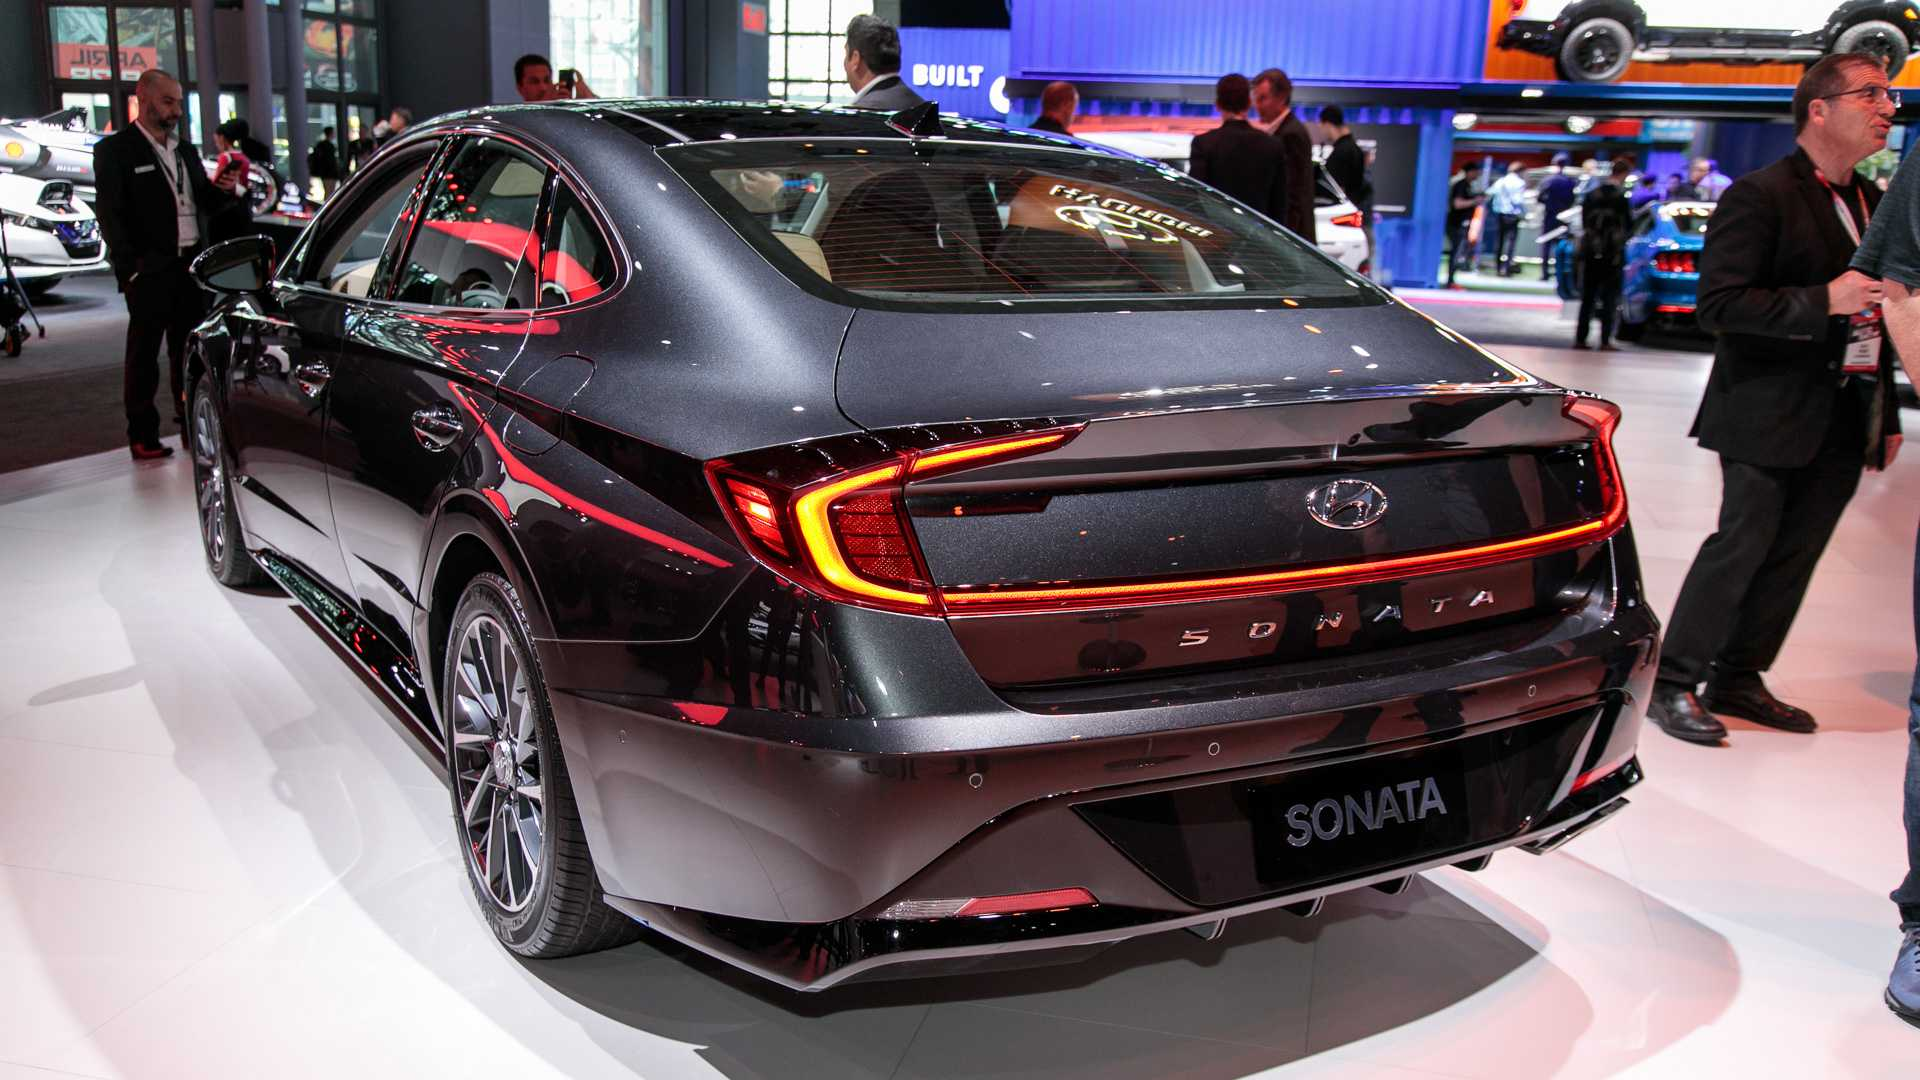 2020-hyundai-sonata-u-s-at-the-new-york-auto-show-6.jpg